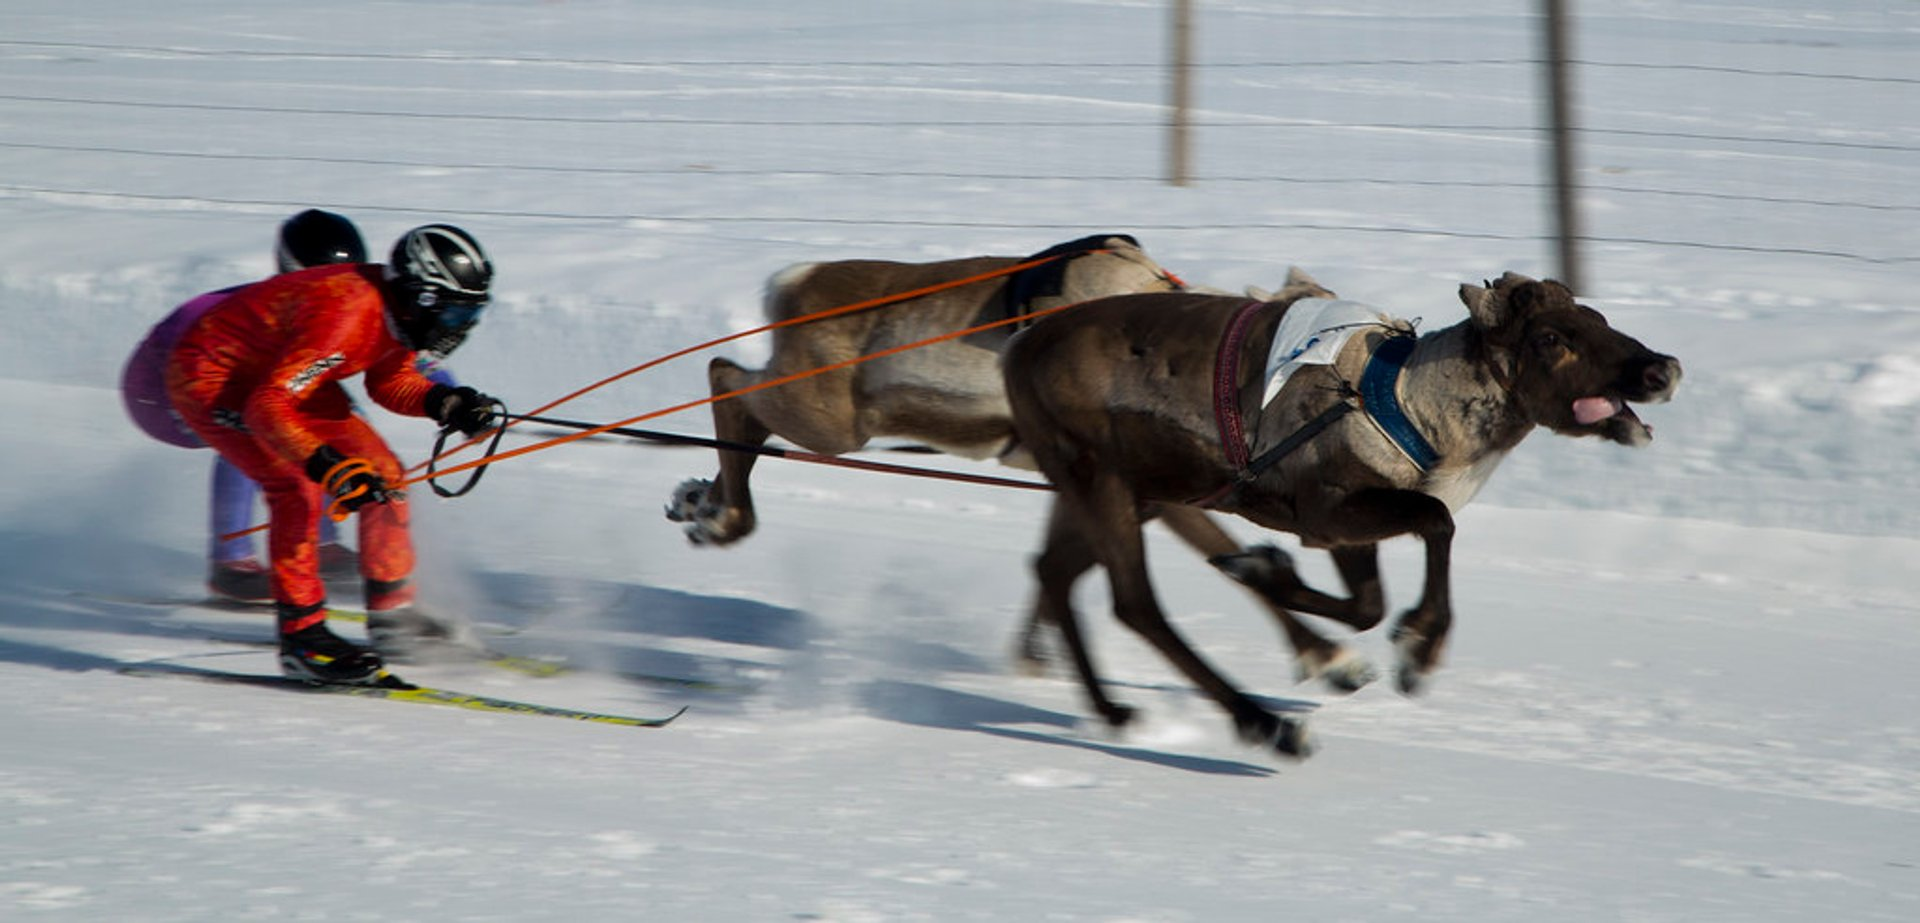 Reindeer skijoring race (deliberately blurred to give feeling of speed), Kautokeino 2019